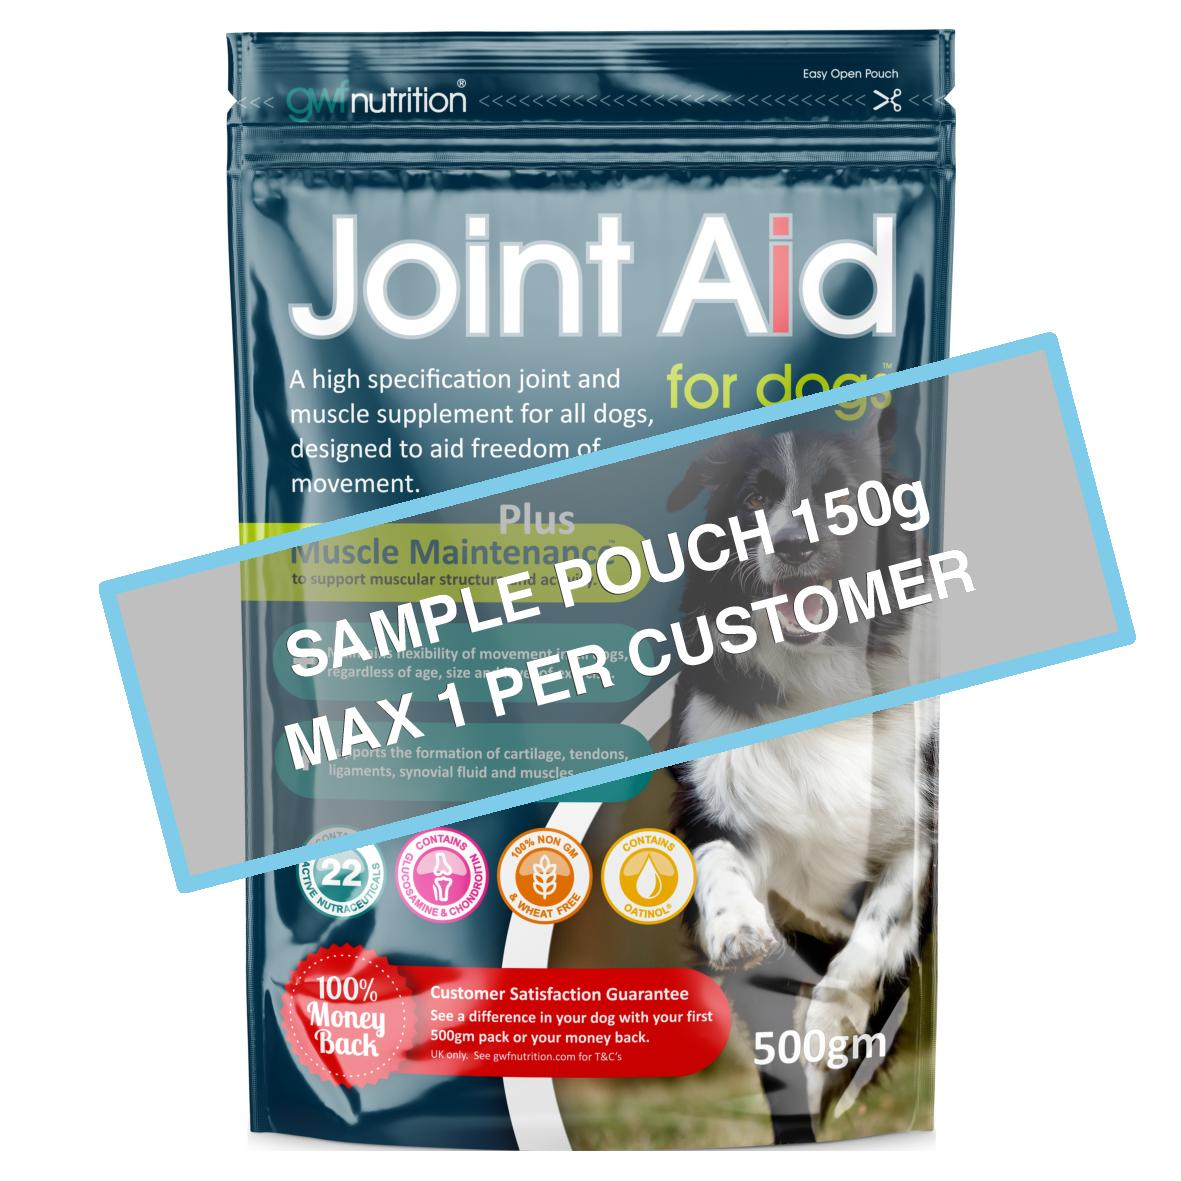 [SAMPLE BAG] GWF Joint Aid Plus Muscle Maintenance 150gm